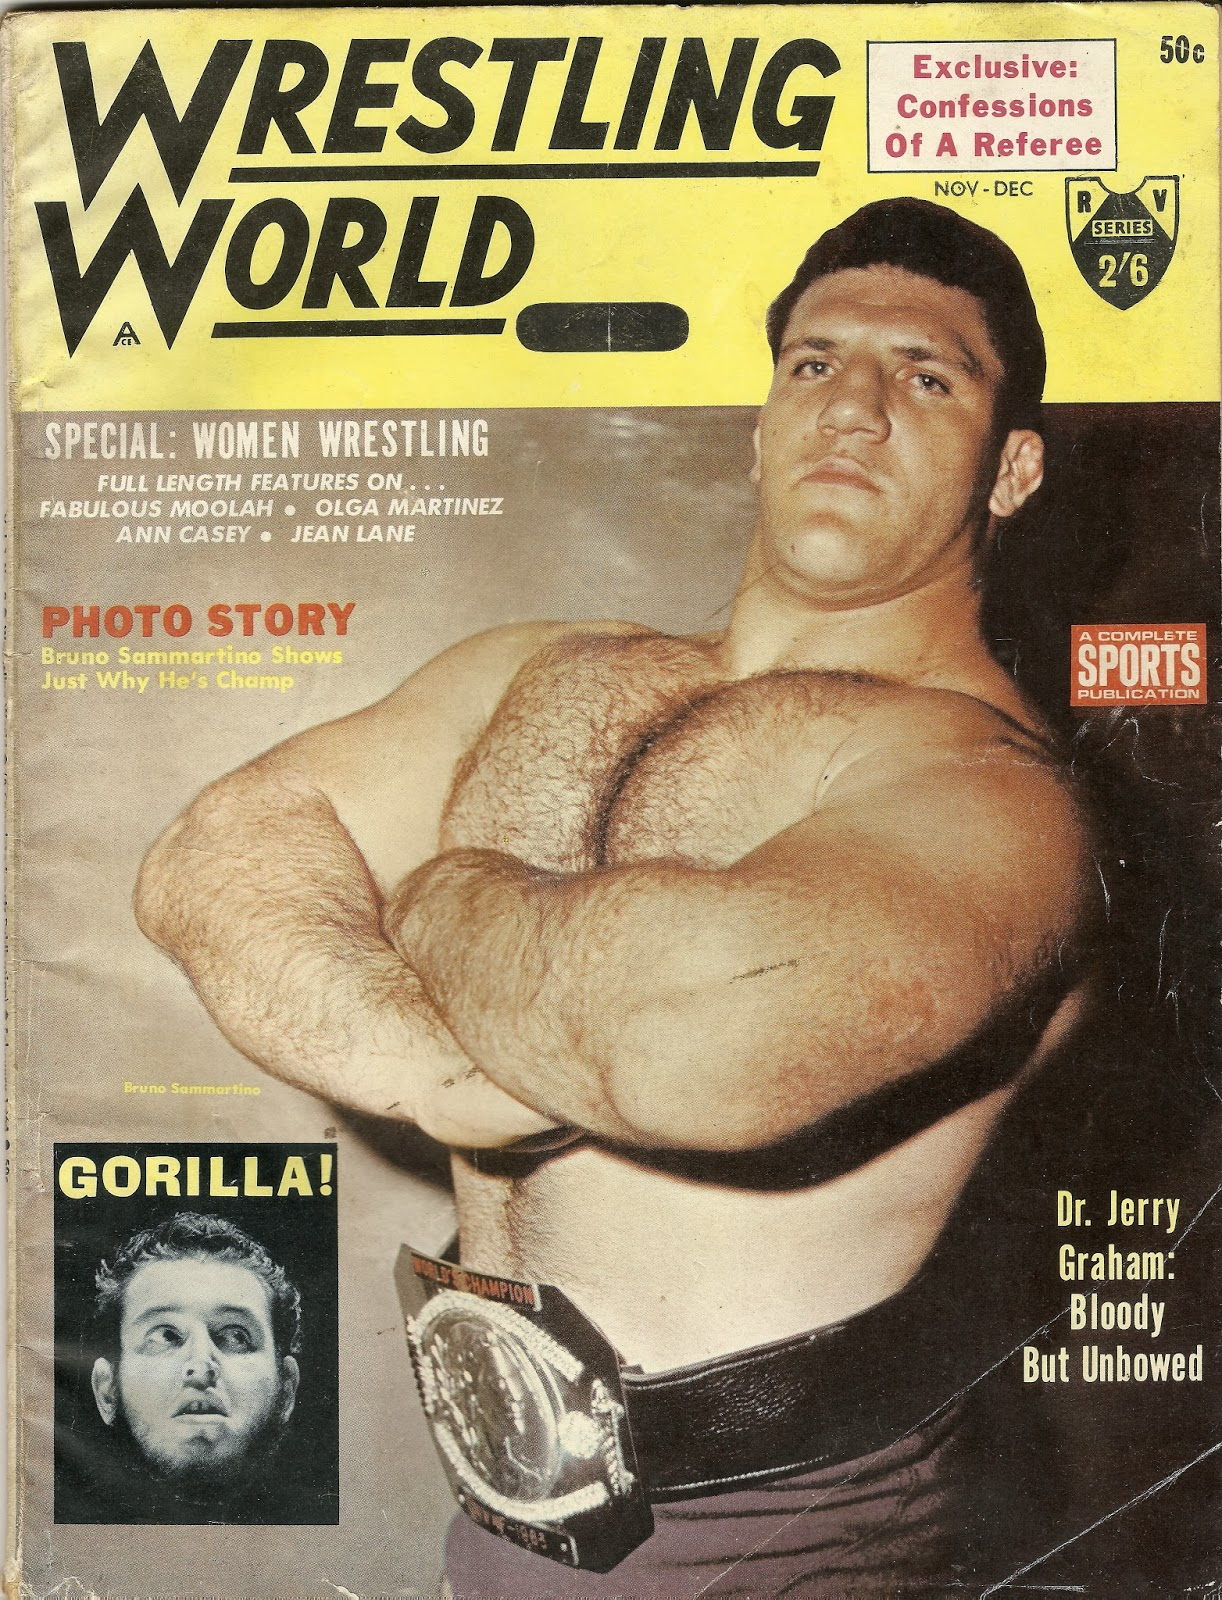 Bruno Sammartino Wrestling mag cover.